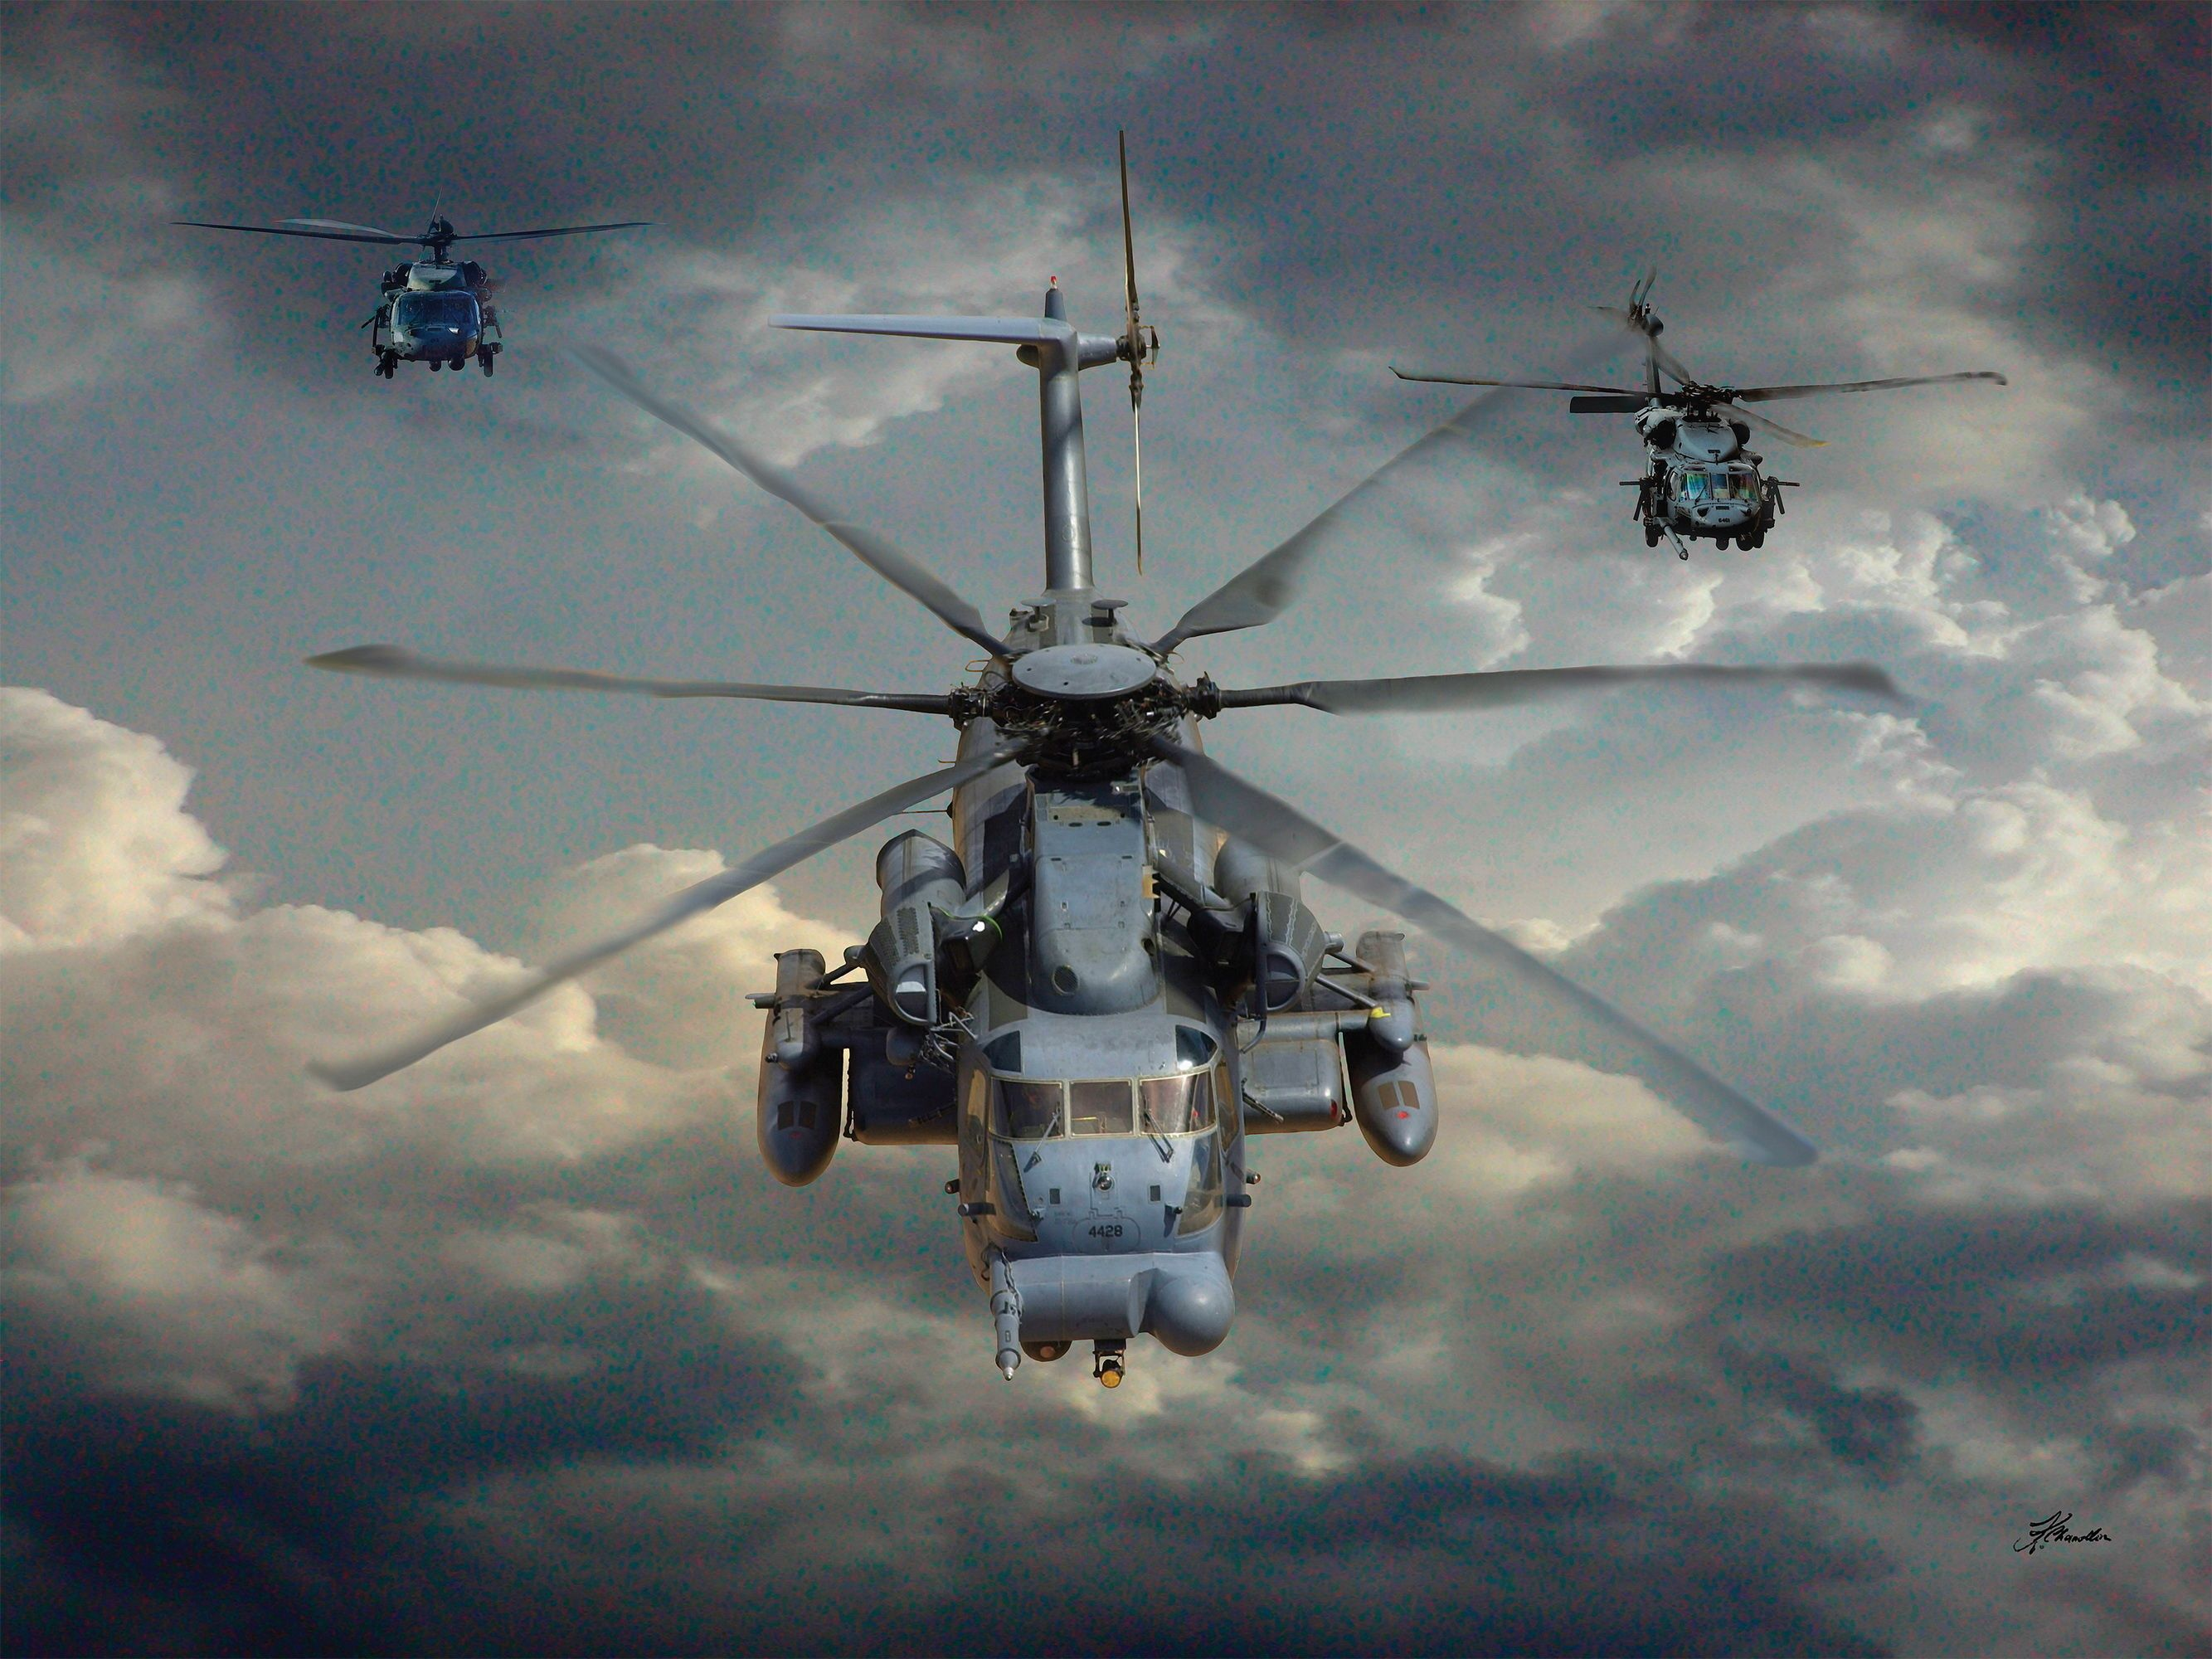 Sikorsky, MH-53M, Pave, Low IV, helicopter - HD wallpaper desktop backgrounds